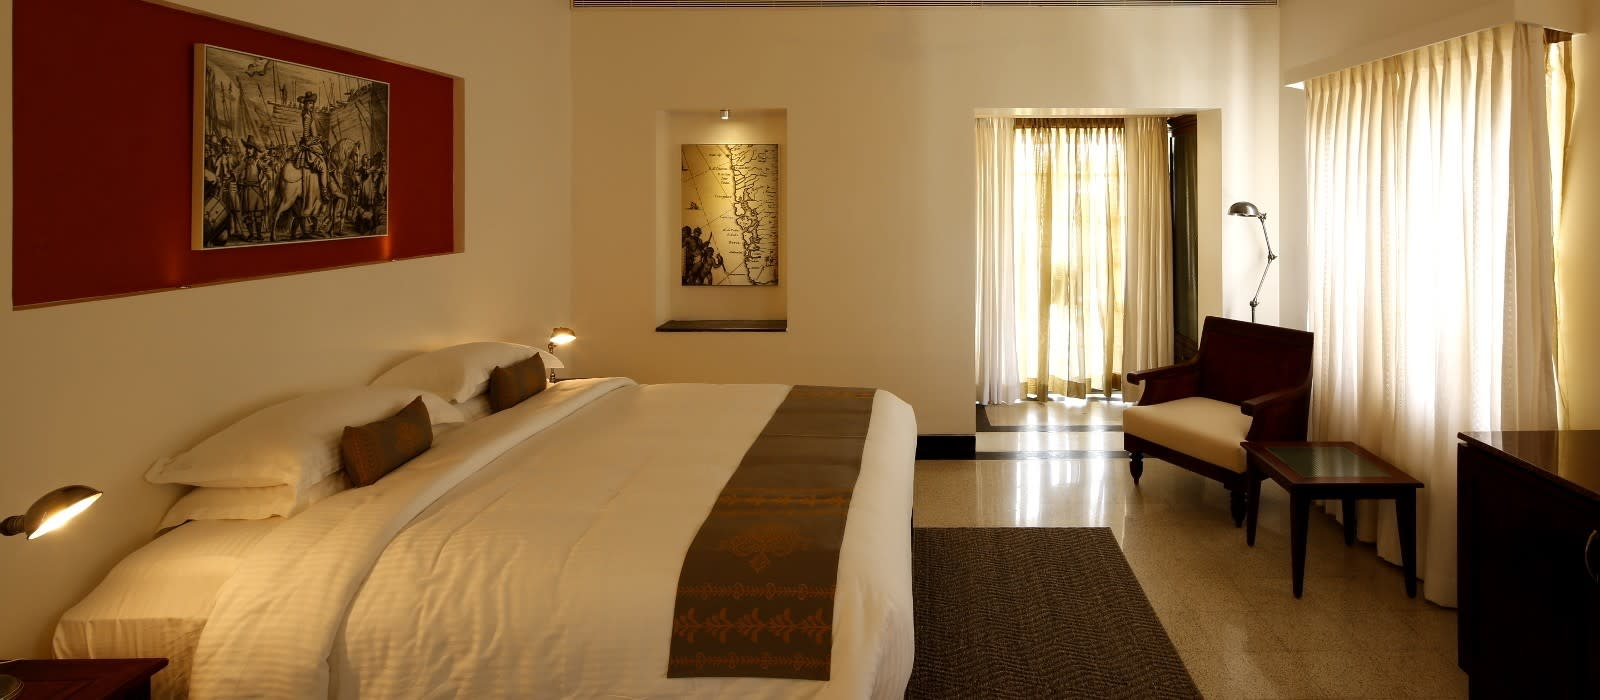 Hotel Eighth Bastion South India